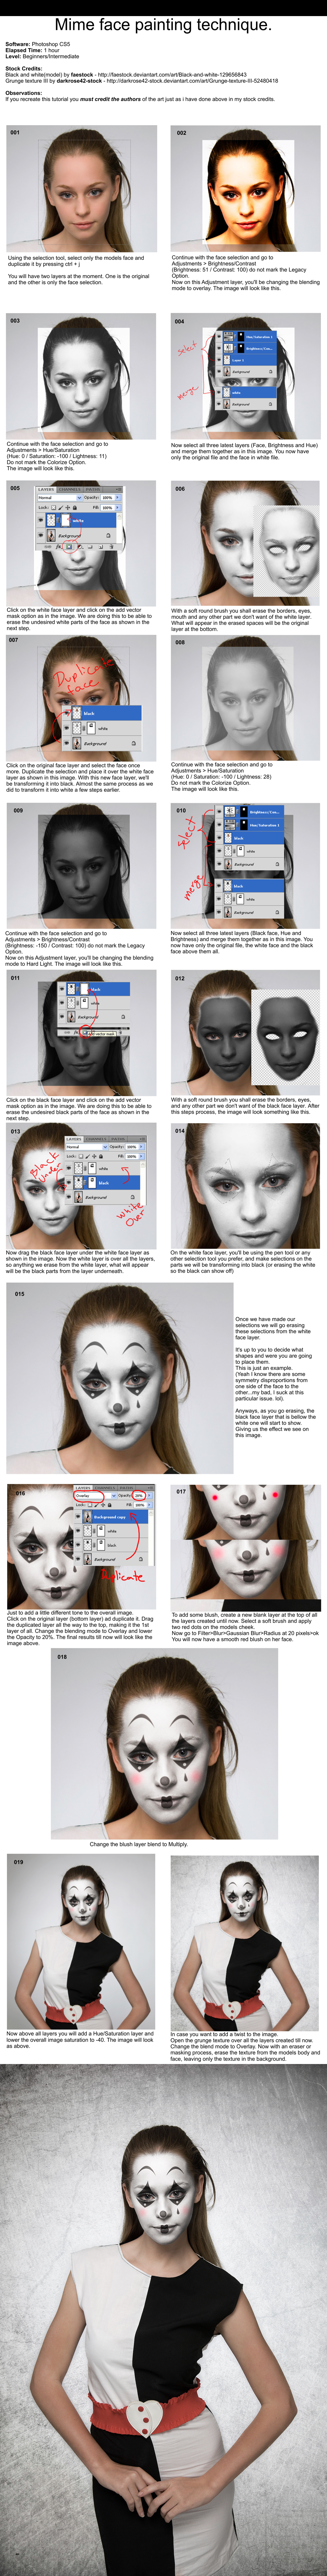 Mime Face Painting Tutorial - Photoshop by PSHoudini